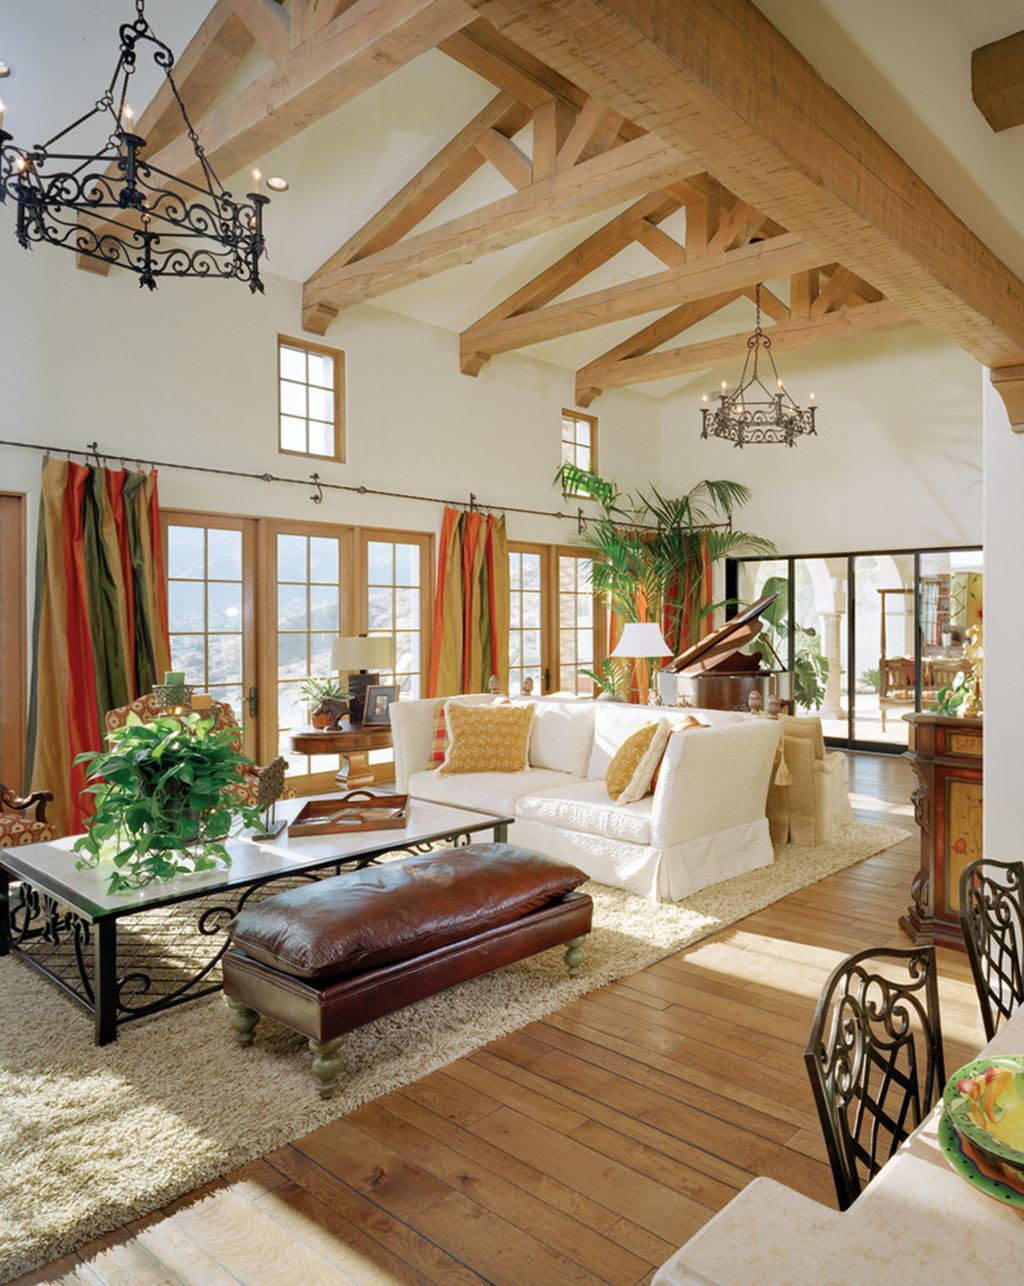 Mediterranean-Style living room design ideas on Apartment Decorating Styles  id=48770